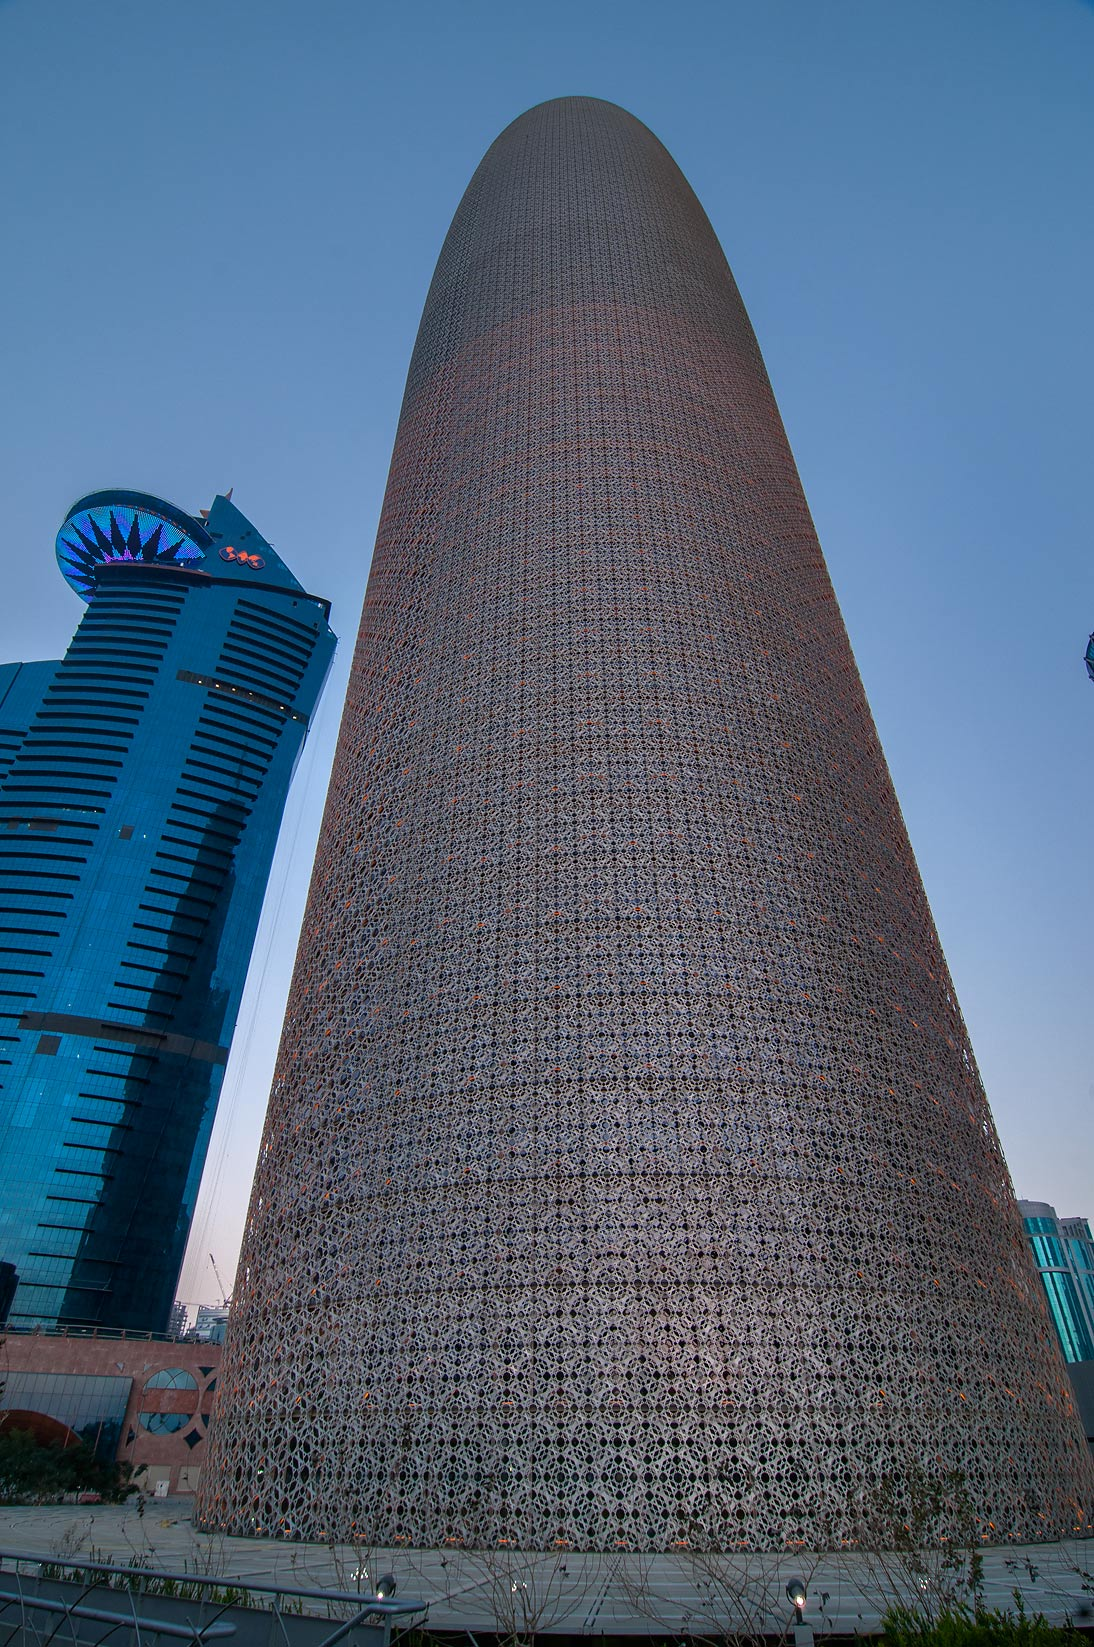 Burj Qatar Tower in West Bay at morning. Doha, Qatar